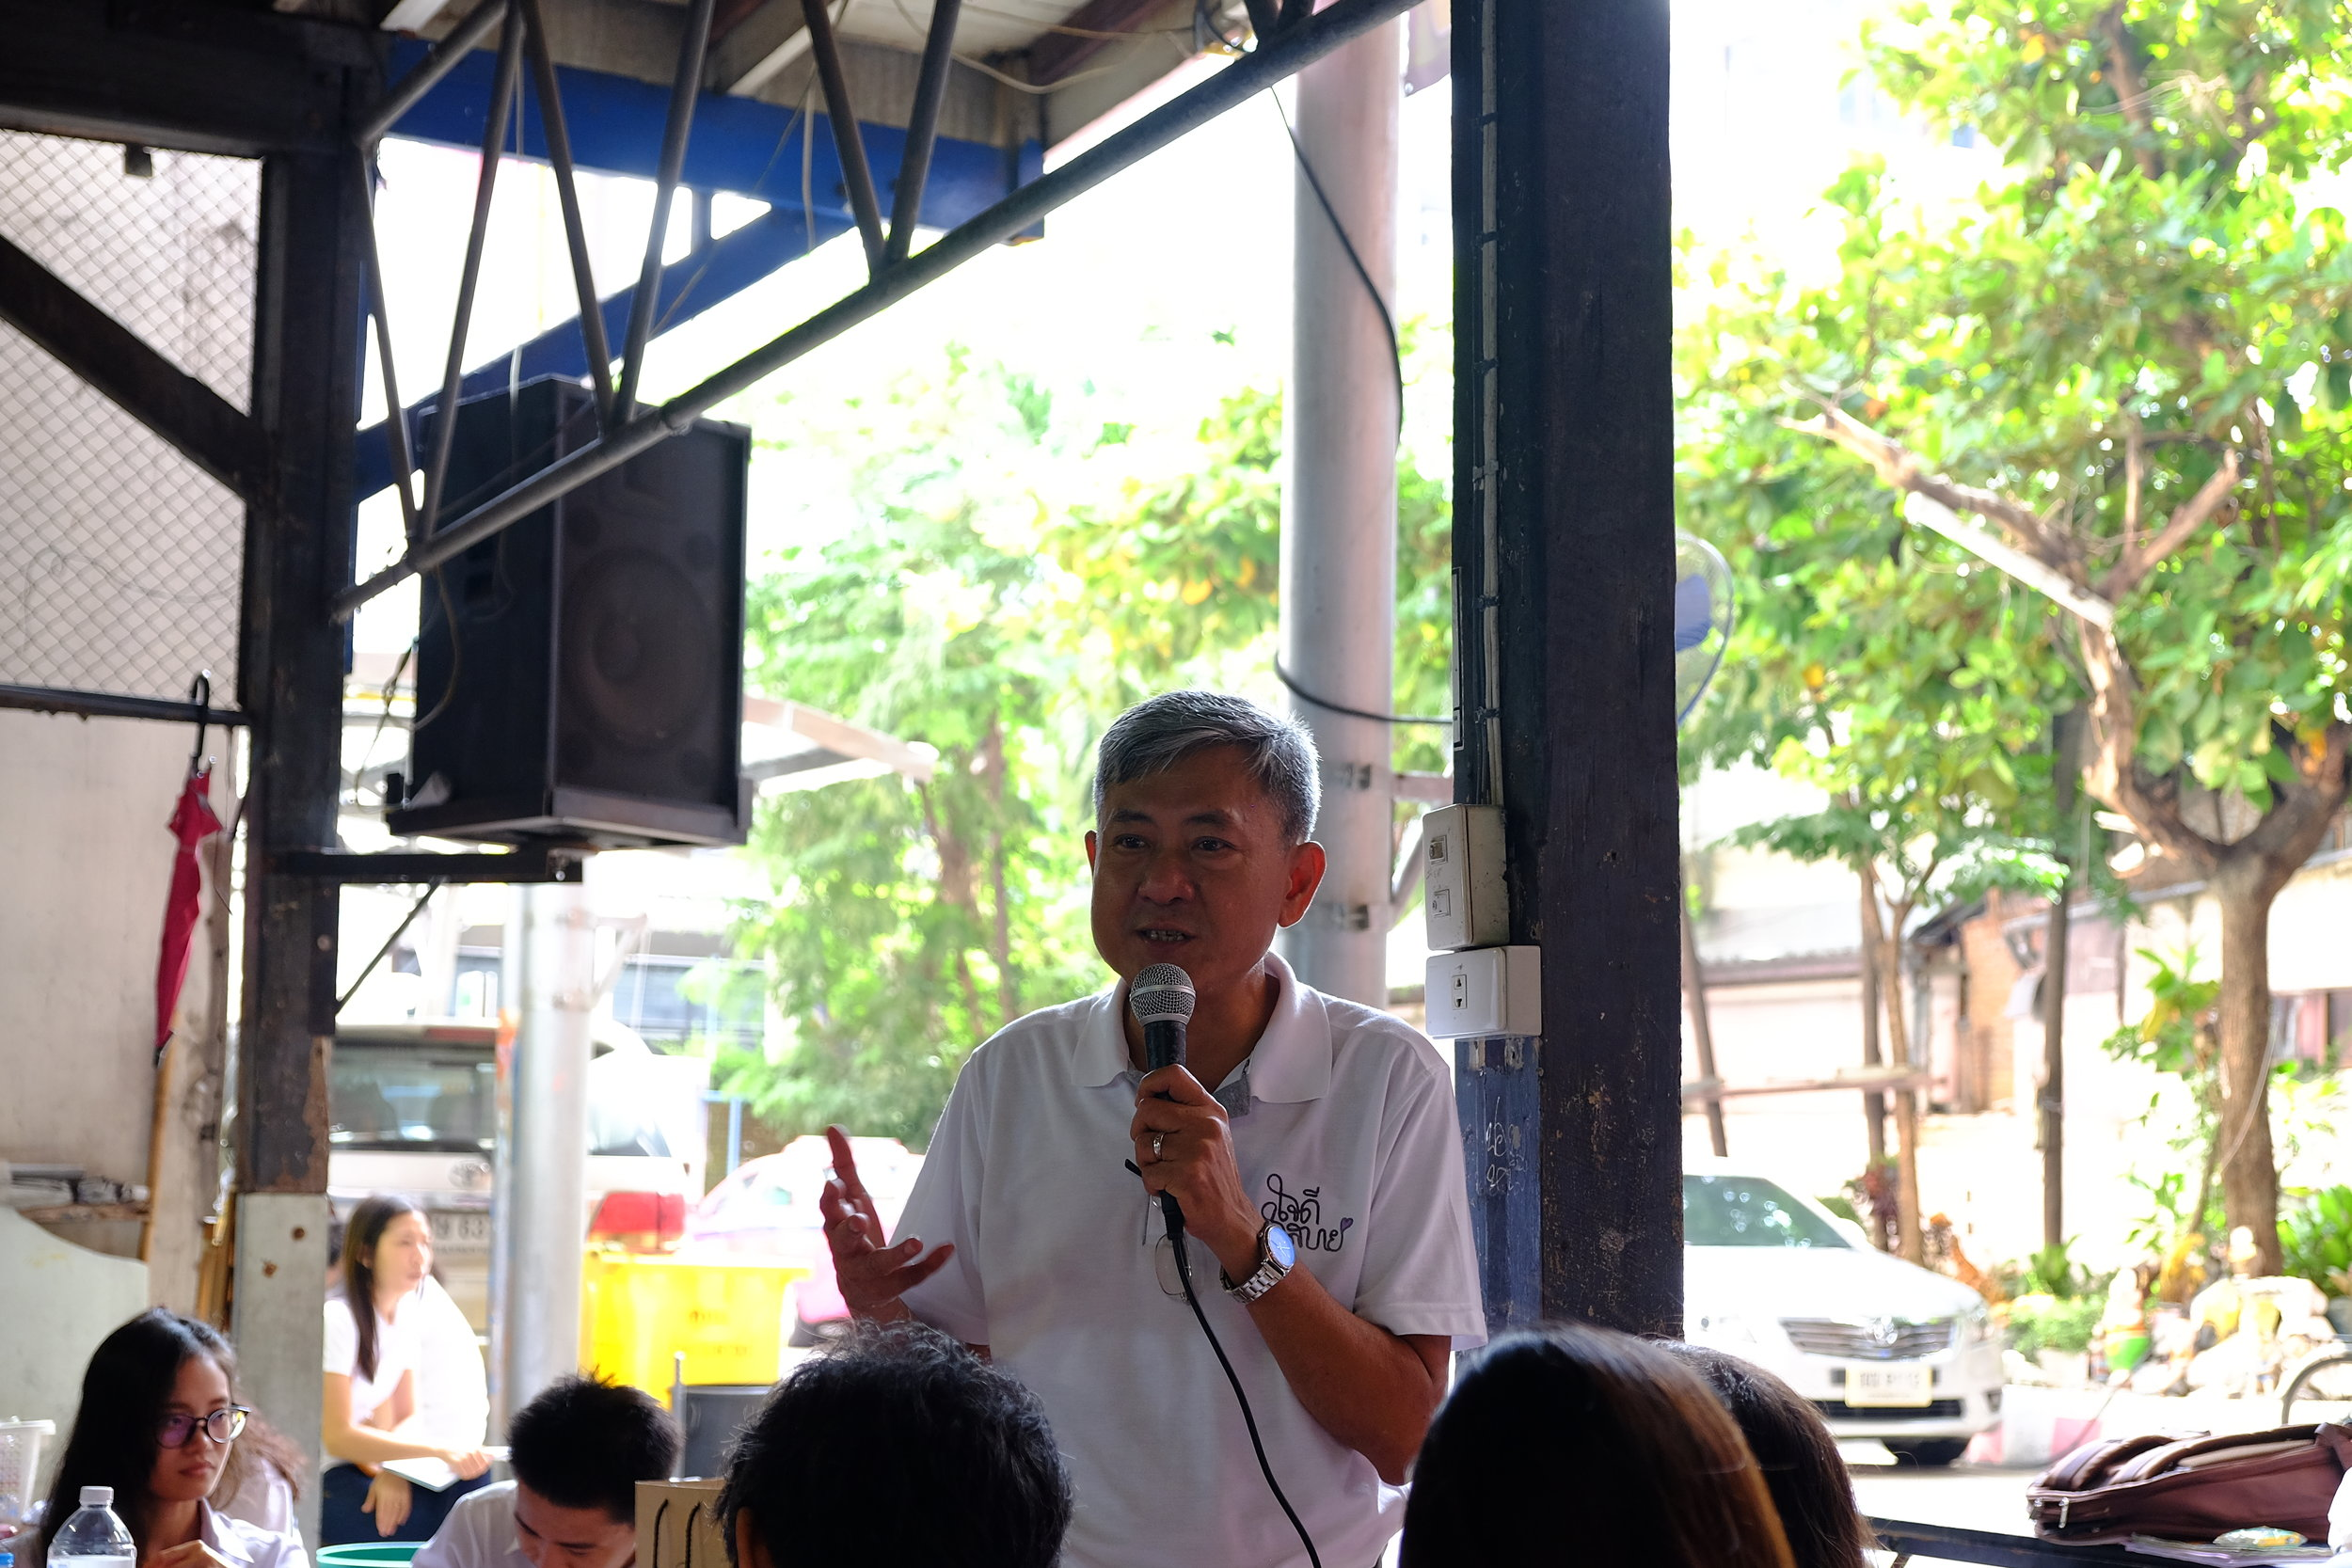 the Deputy Director, Mr.Myint Wai, gave introduction about DEAR Burma to MAIDS Students